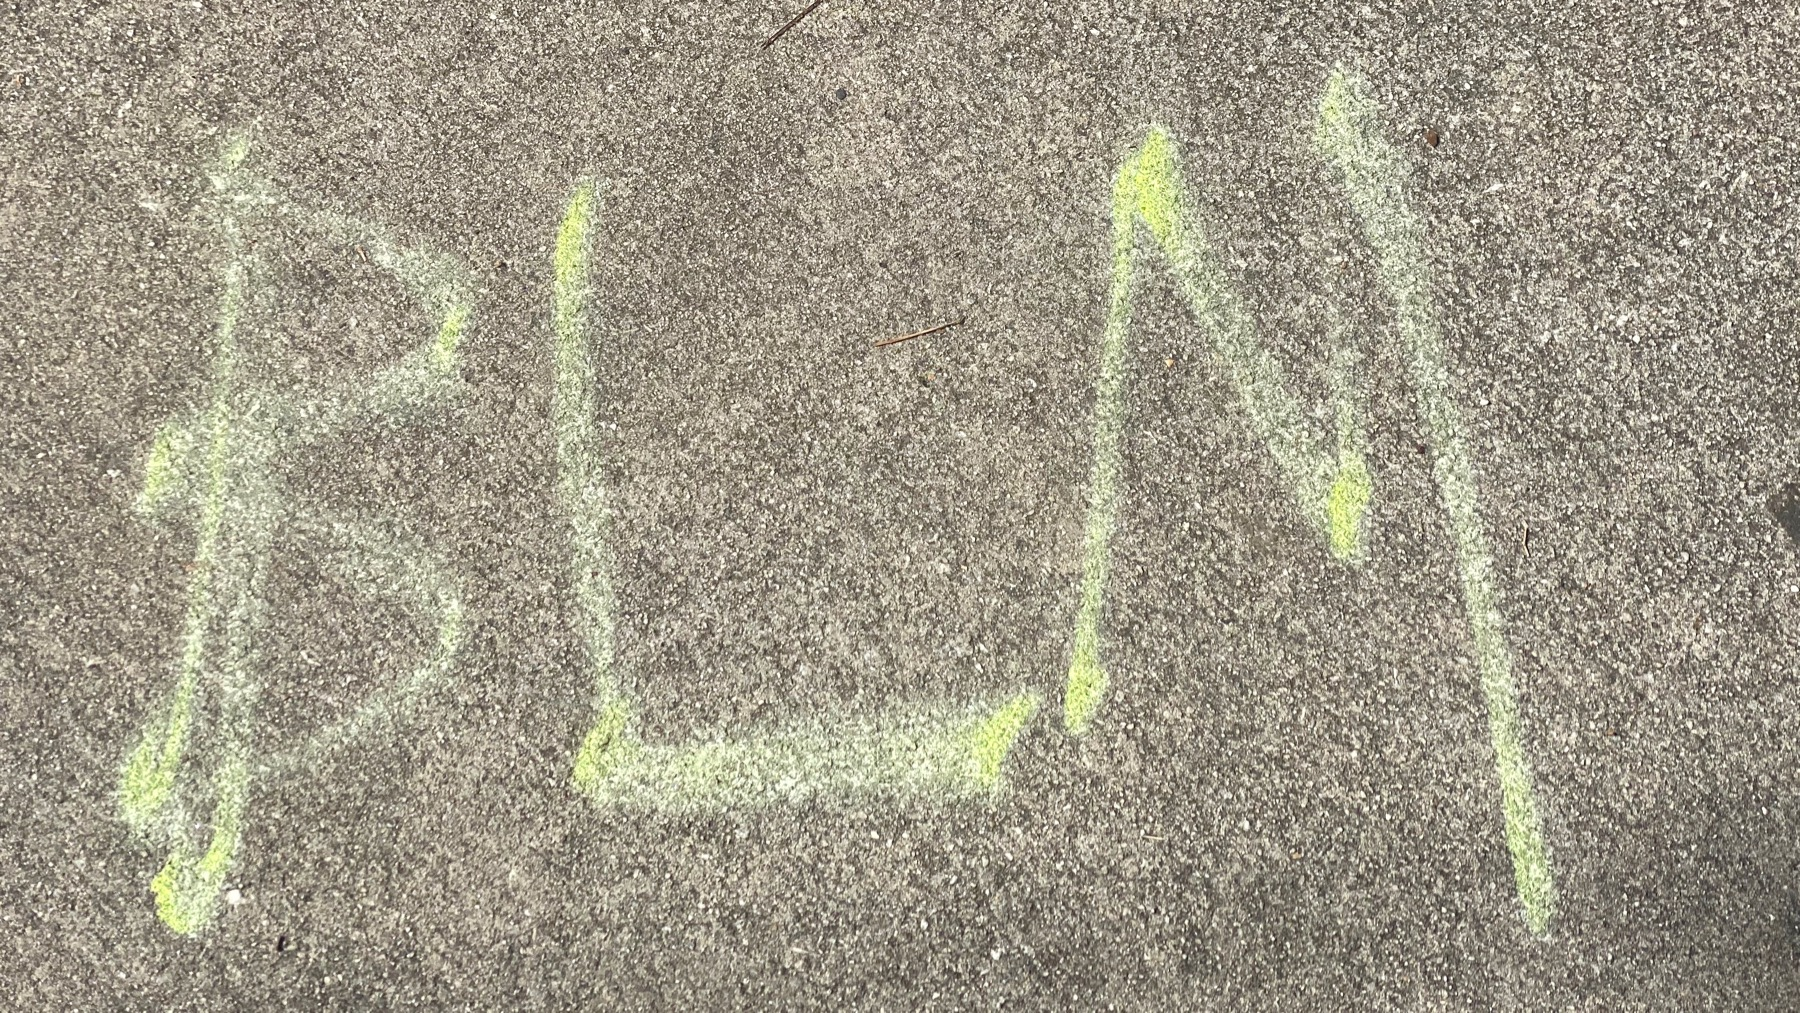 BLM in chalk